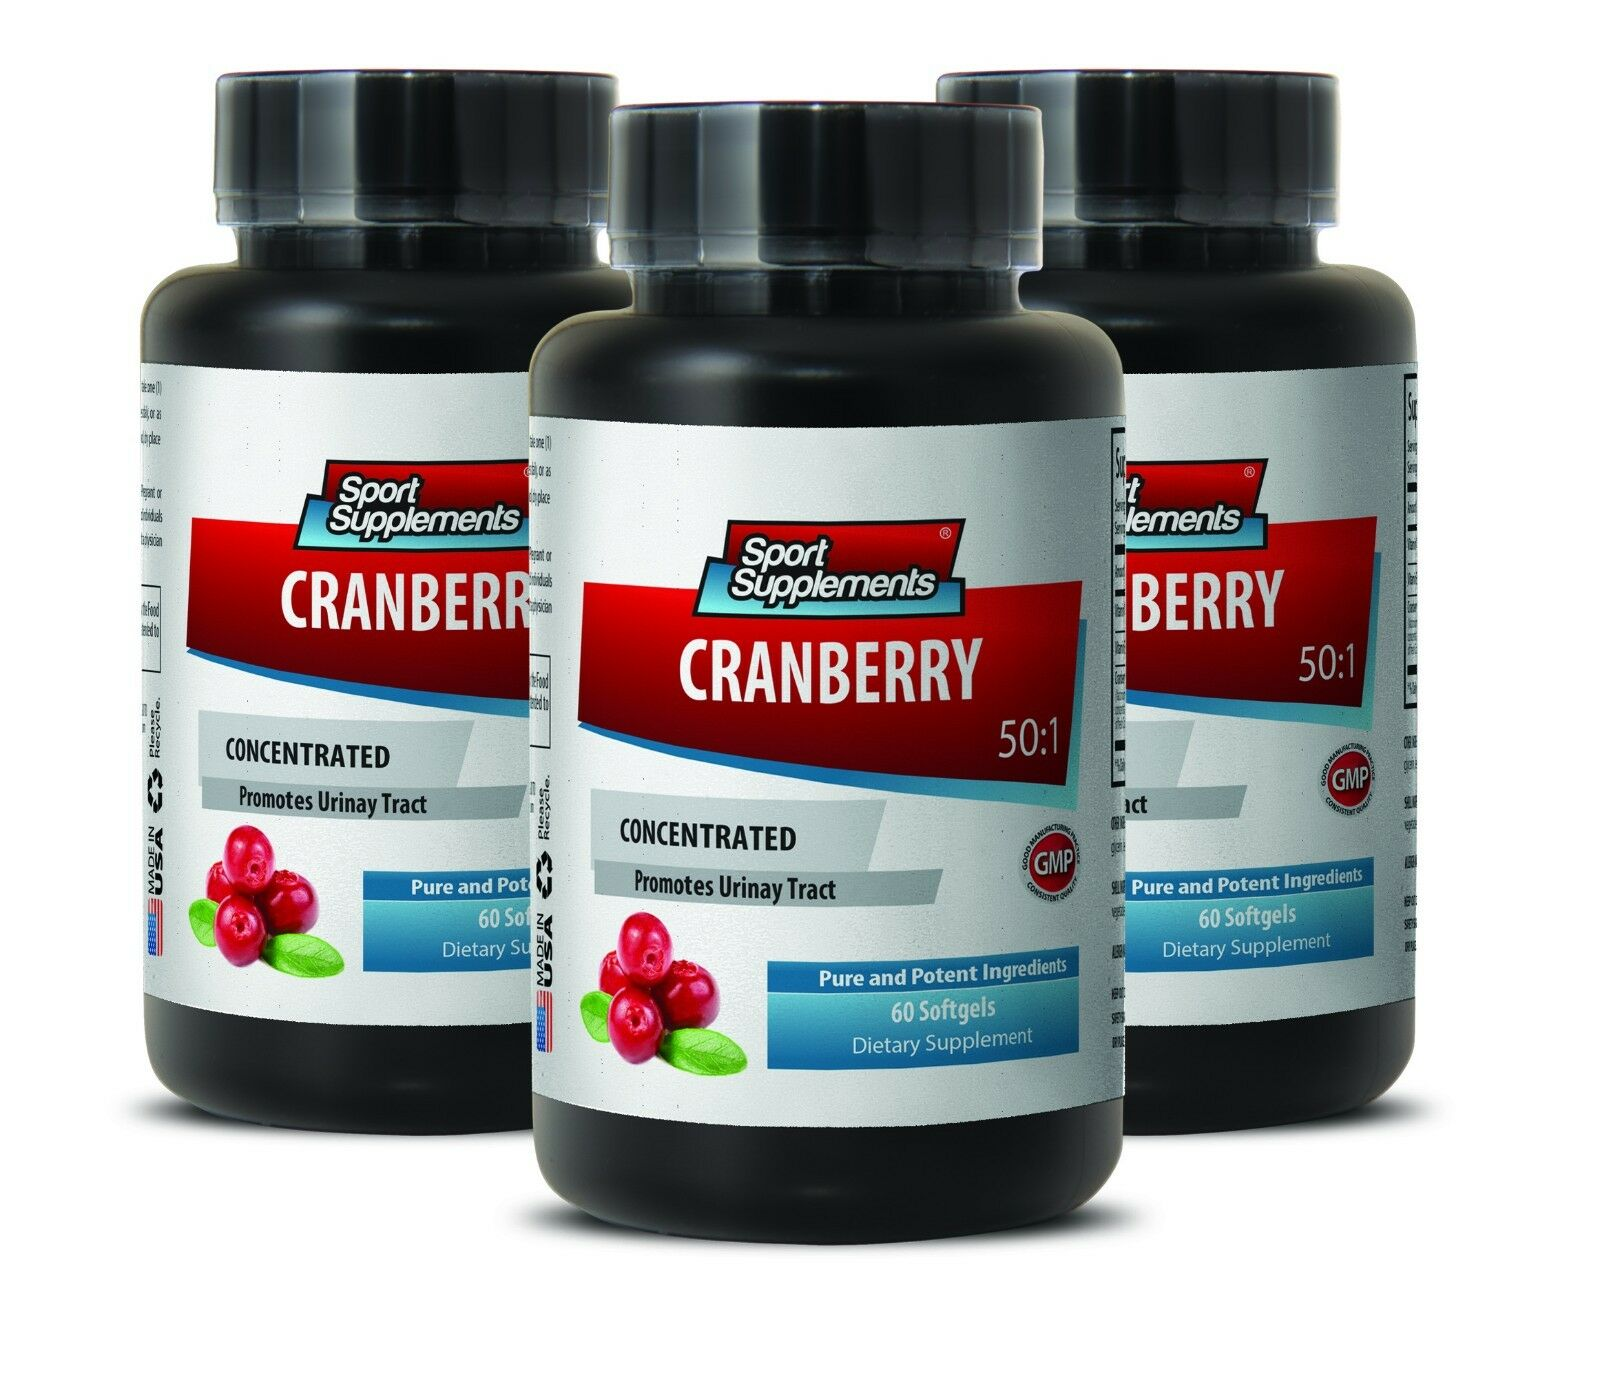 Better Concentration - Cranberry Concentrated 272mg - Cra...